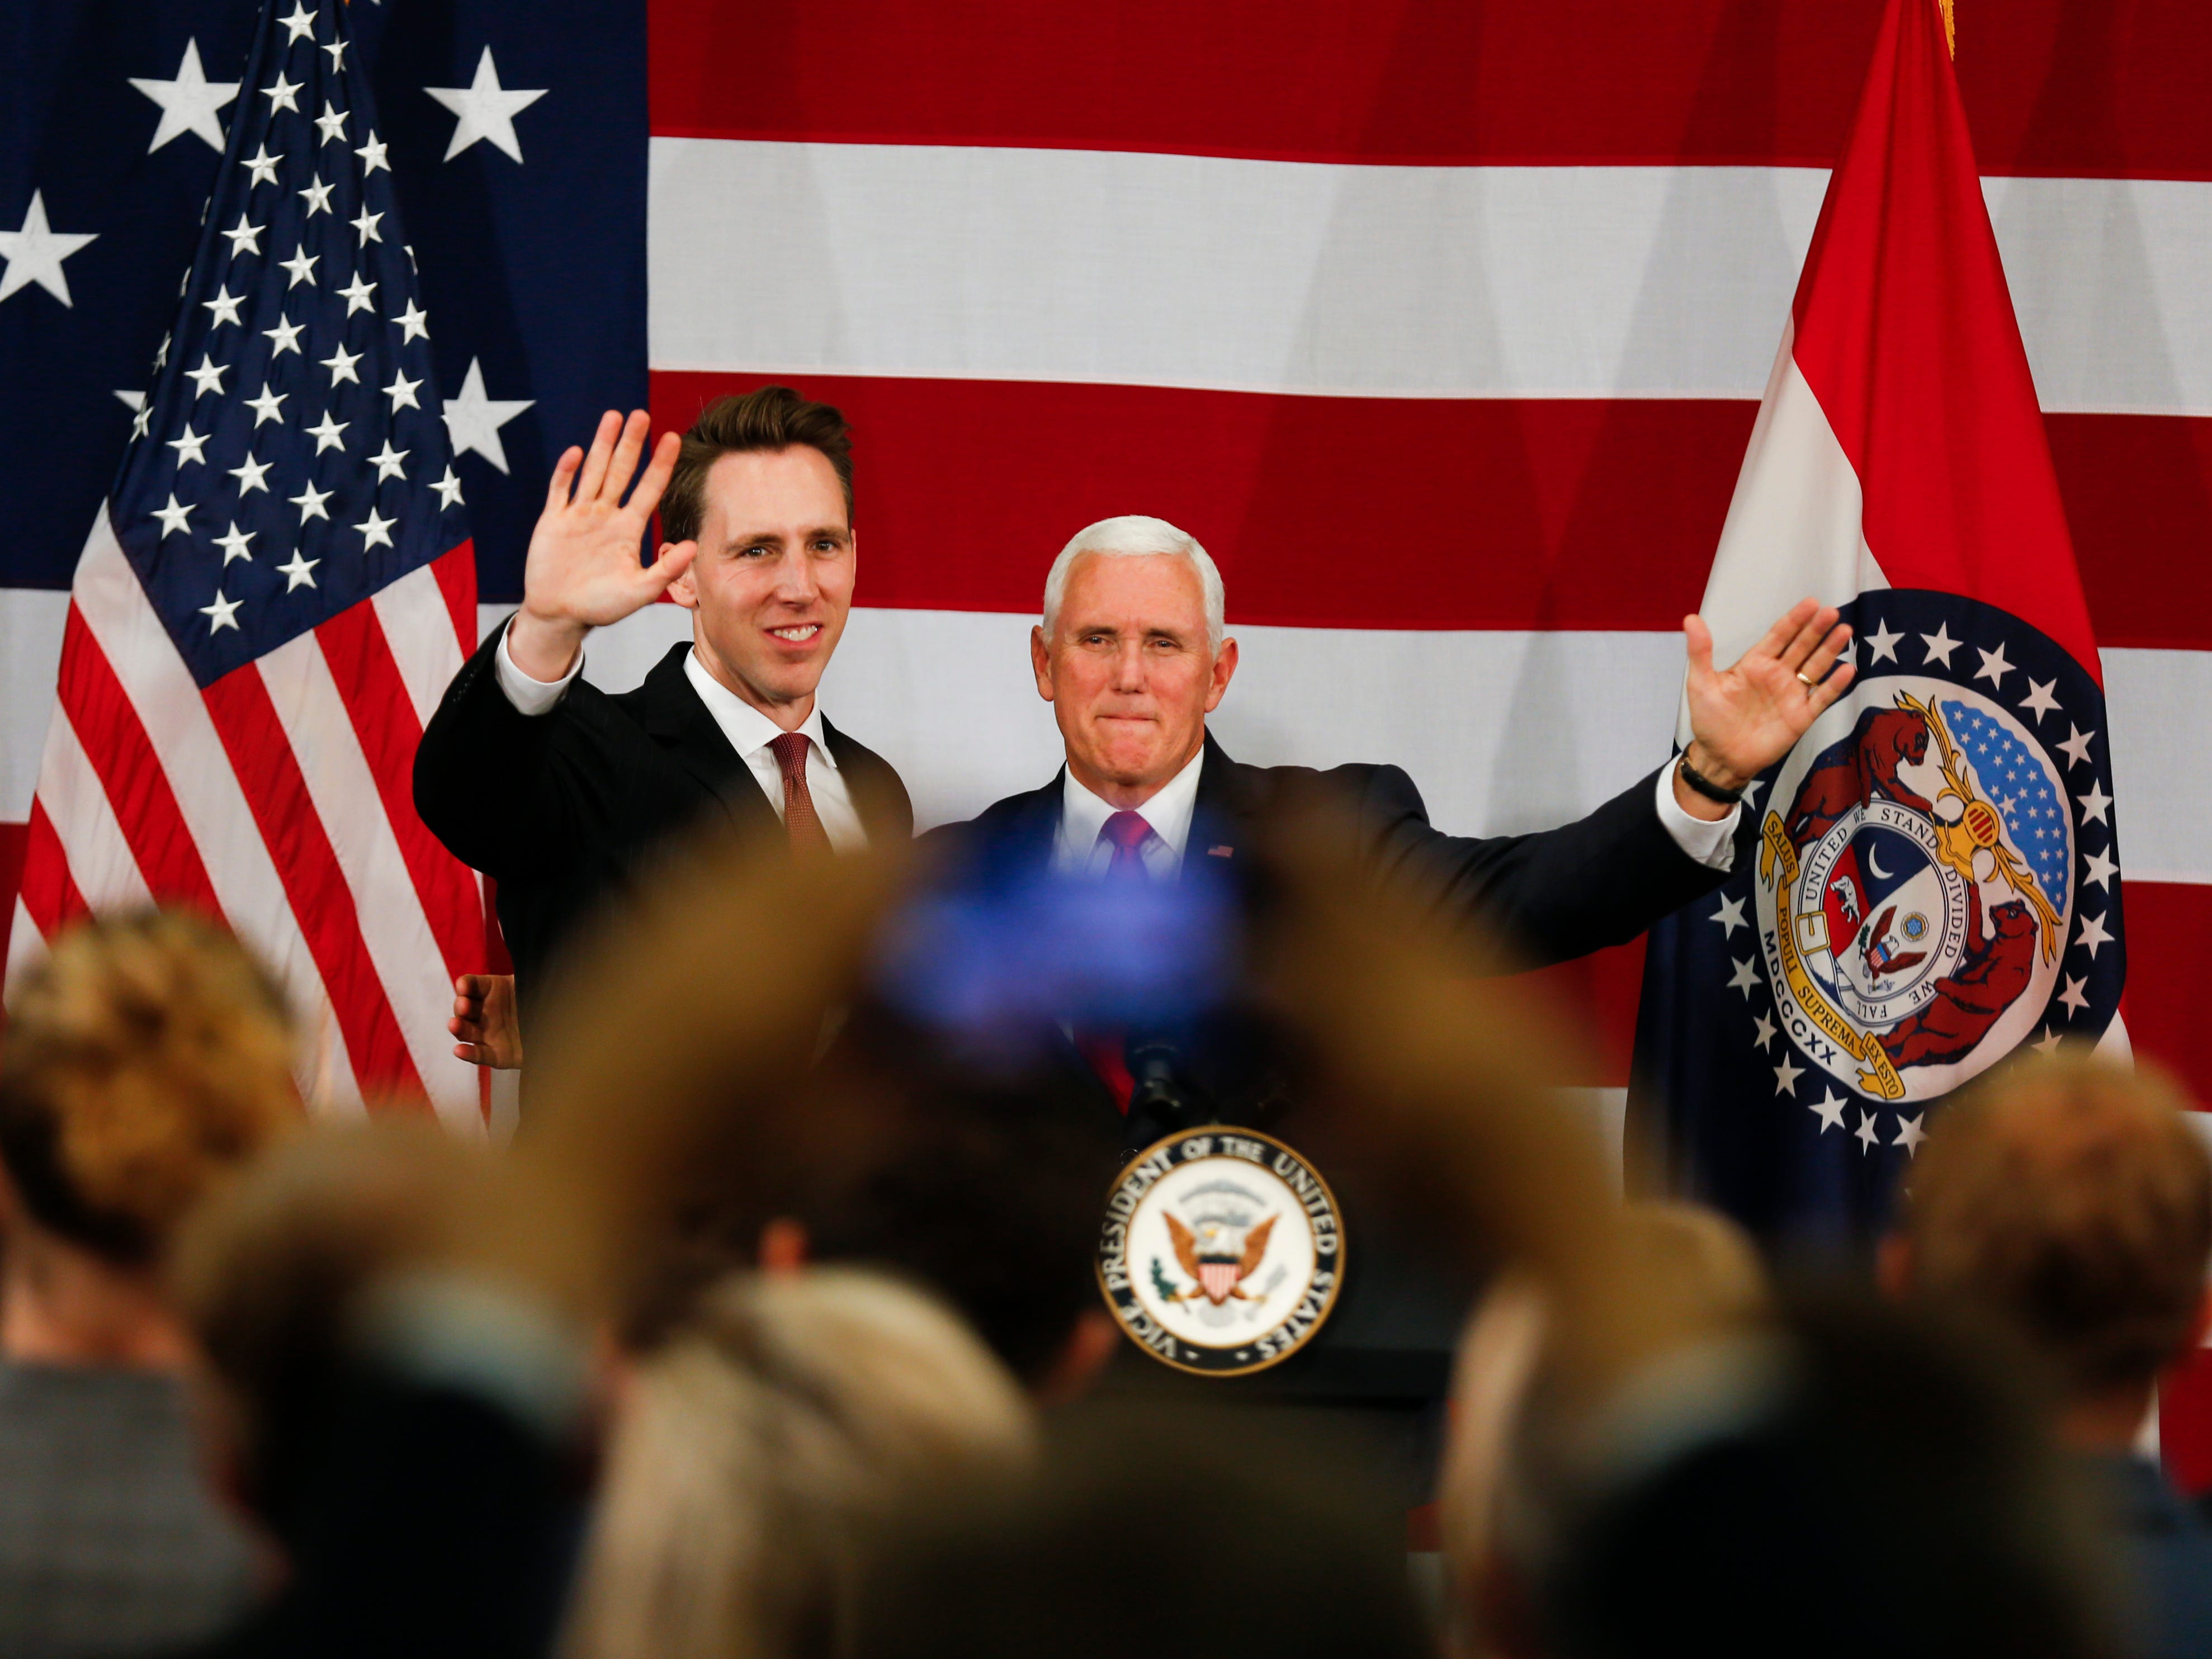 Vice President Mike Pence appears on stage with U.S. Senate candidate Josh Hawley, who is running against Sen. Claire McCaskill in Missouri, at the Oasis Hotel & Convention Center during a private fundraising event in Springfield, Mo. on Monday, Oct. 8, 2018.